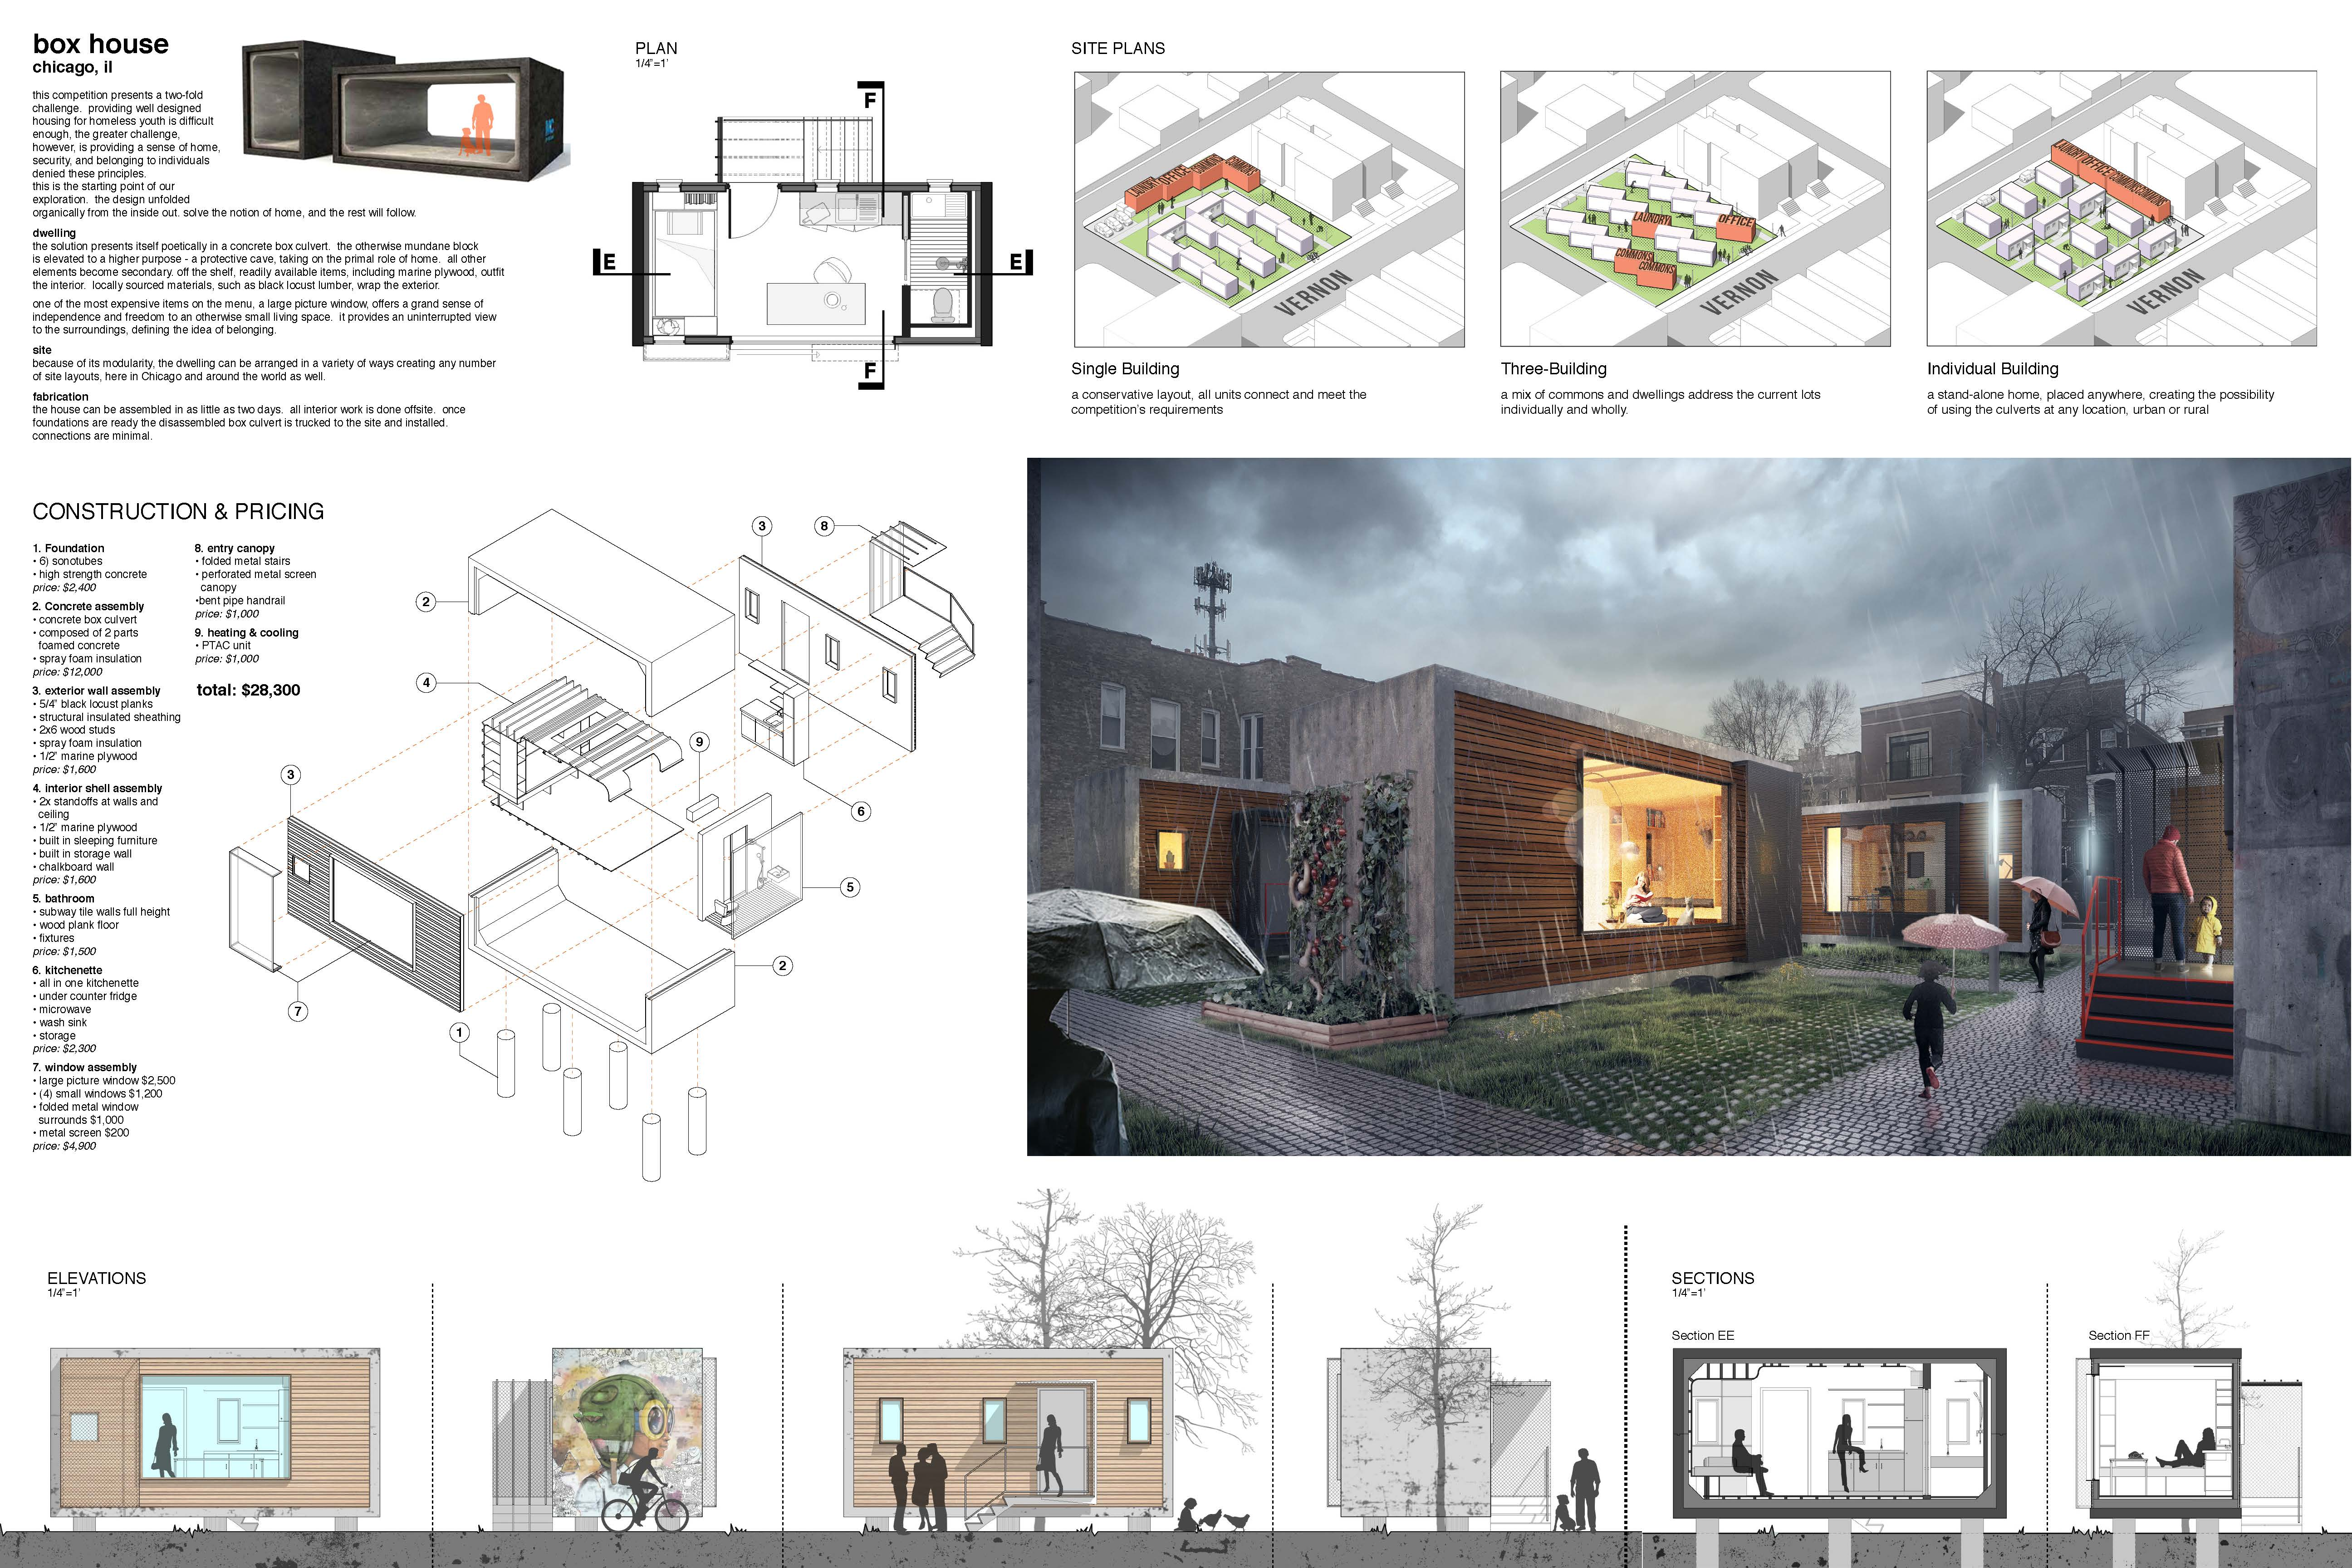 News american institute of architects for Architect design for home construction